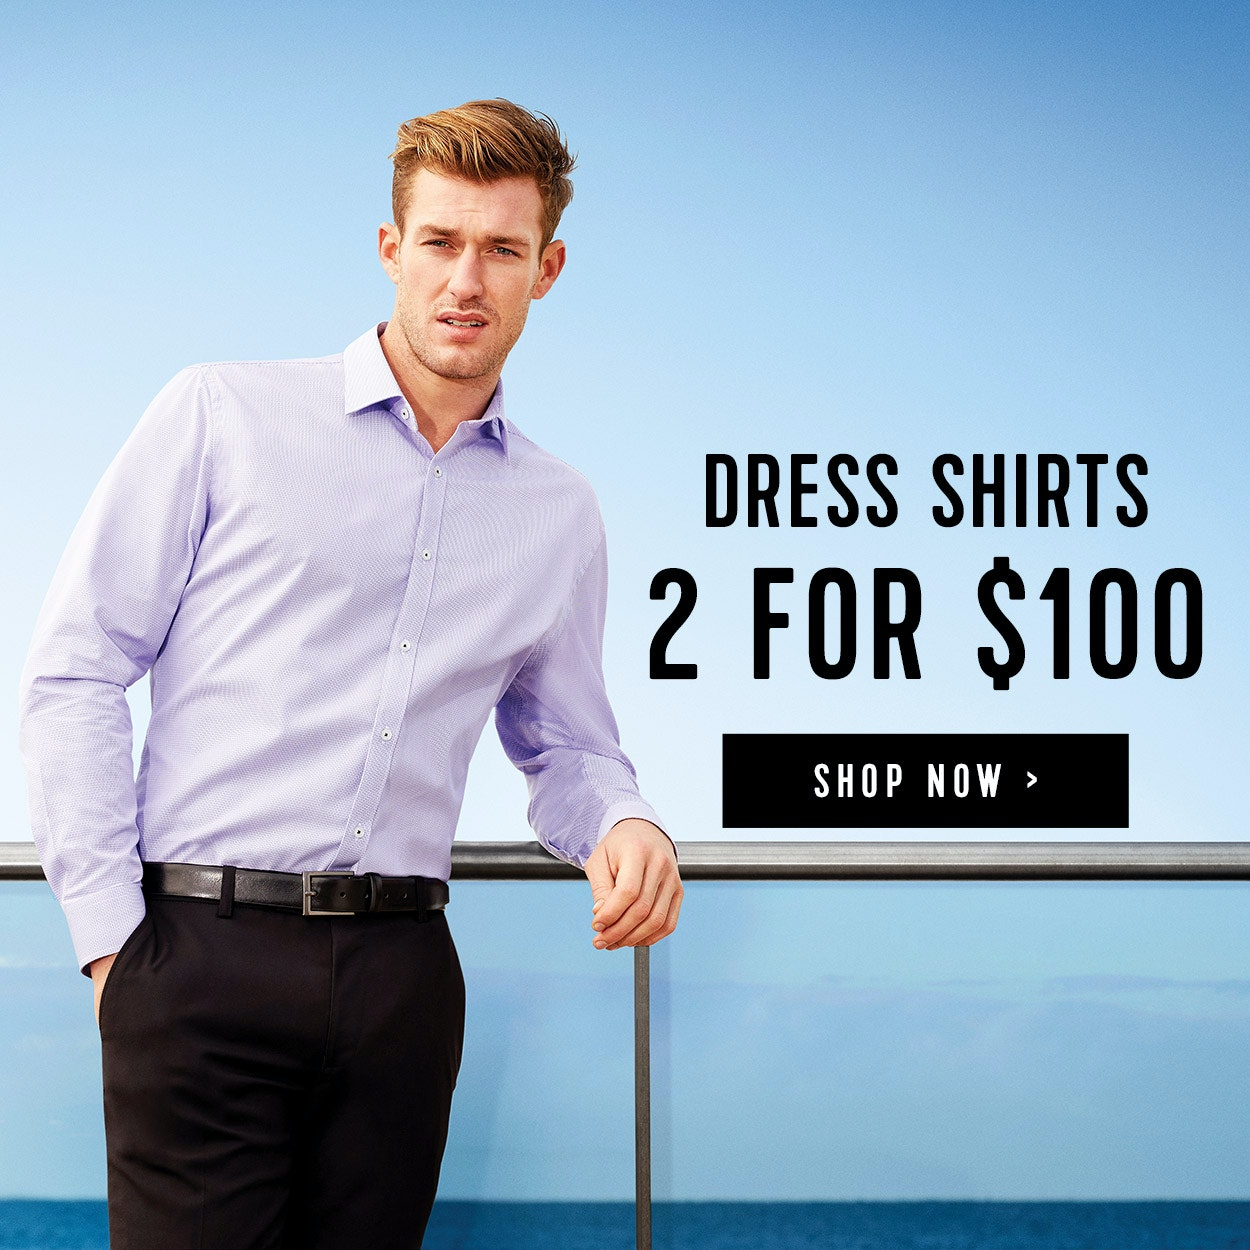 2 for $100 Dress Shirts